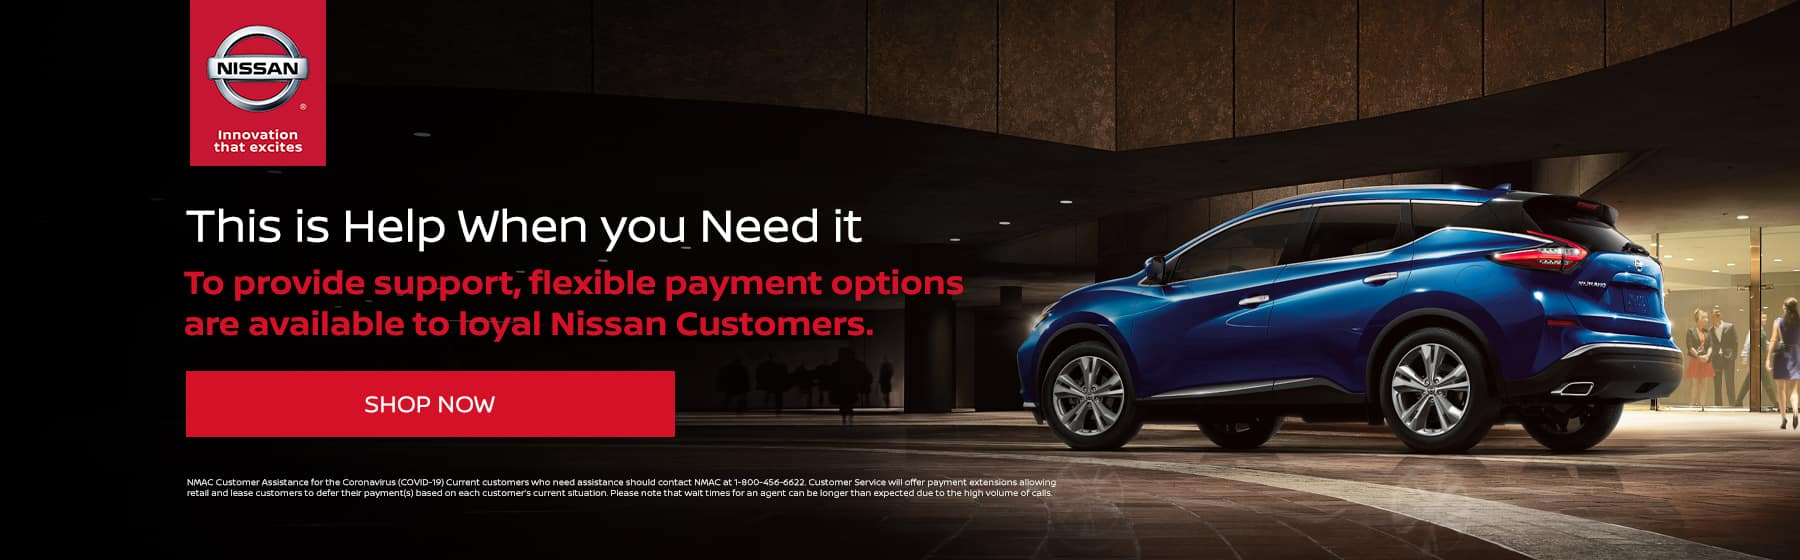 Nissan is Here for You